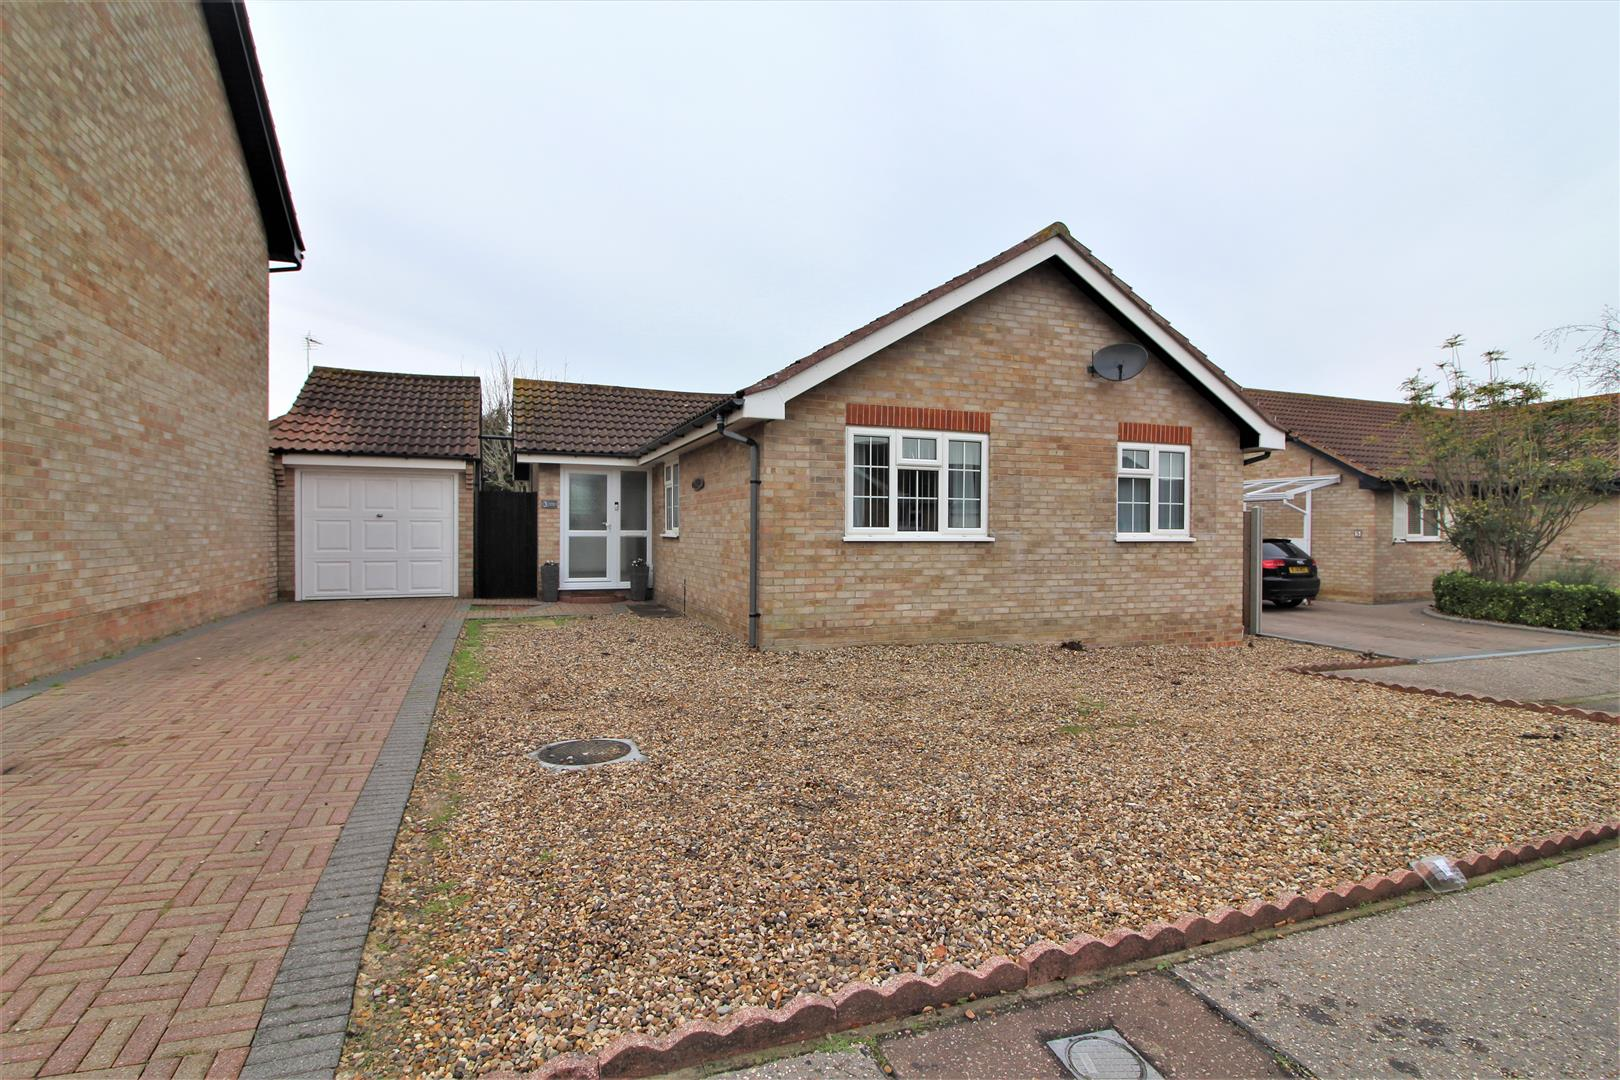 Shaw Close, Frietuna, Essex, CO13 0TB